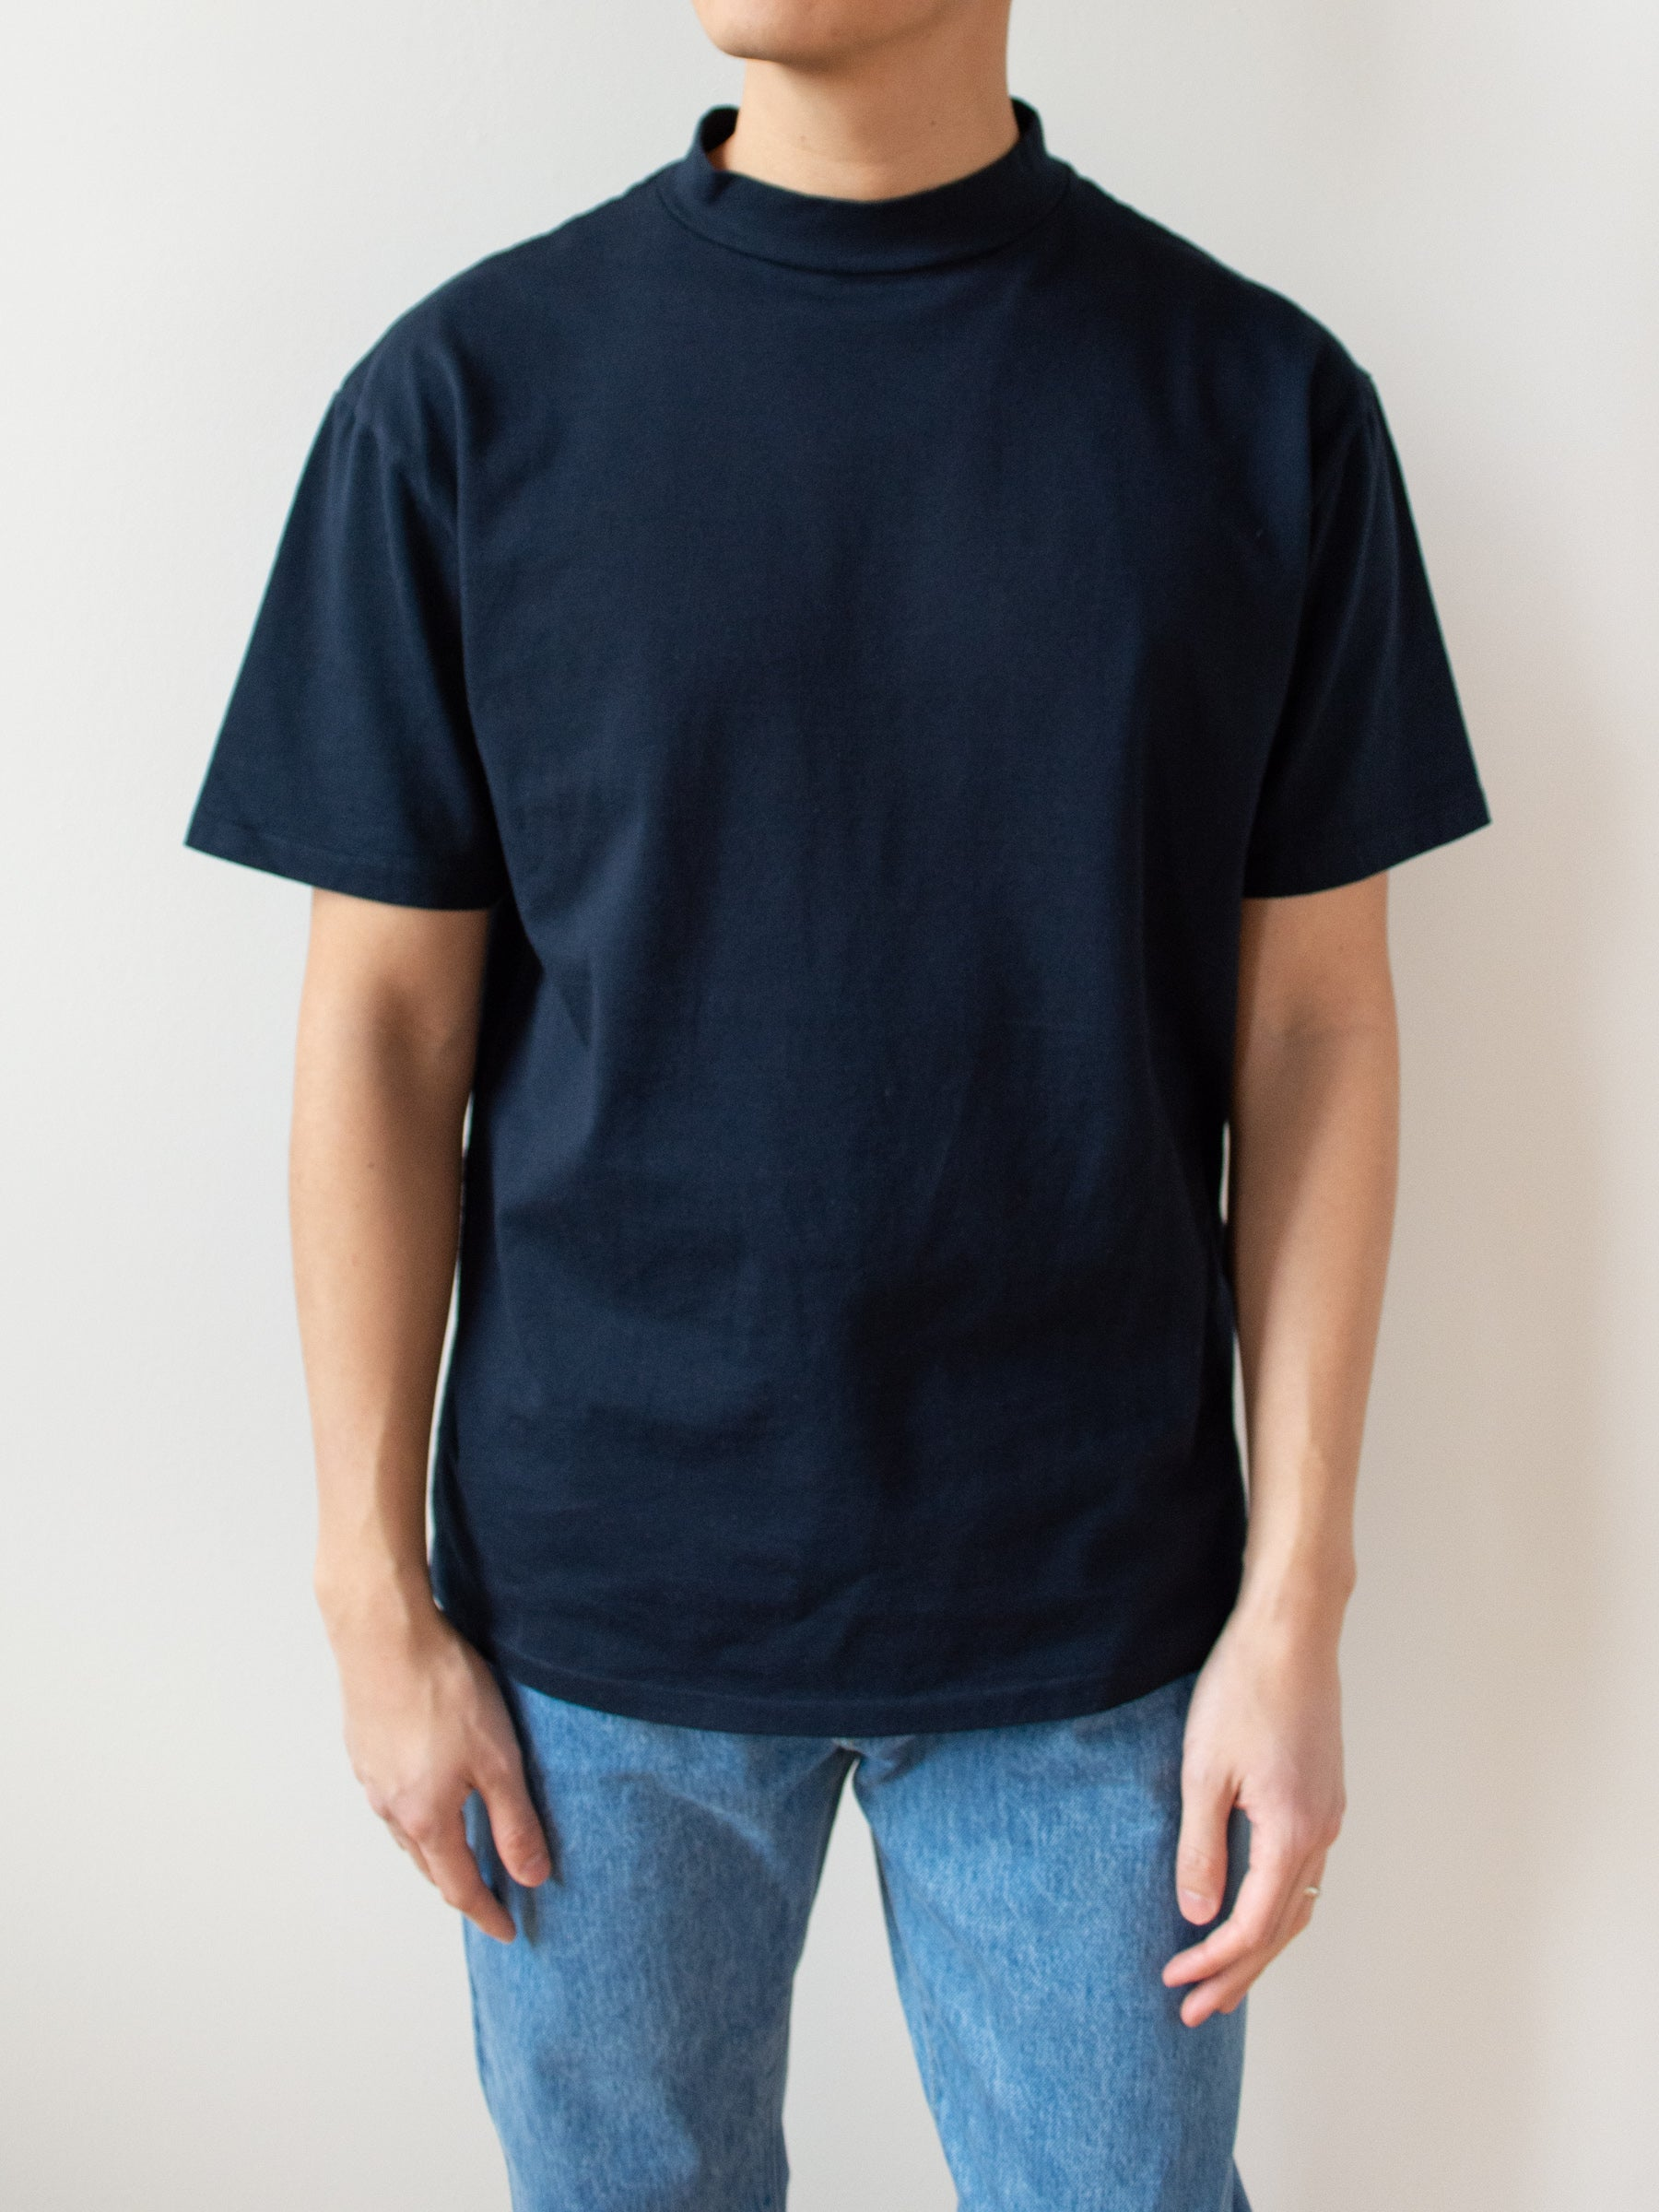 Mock Neck Tee - Navy